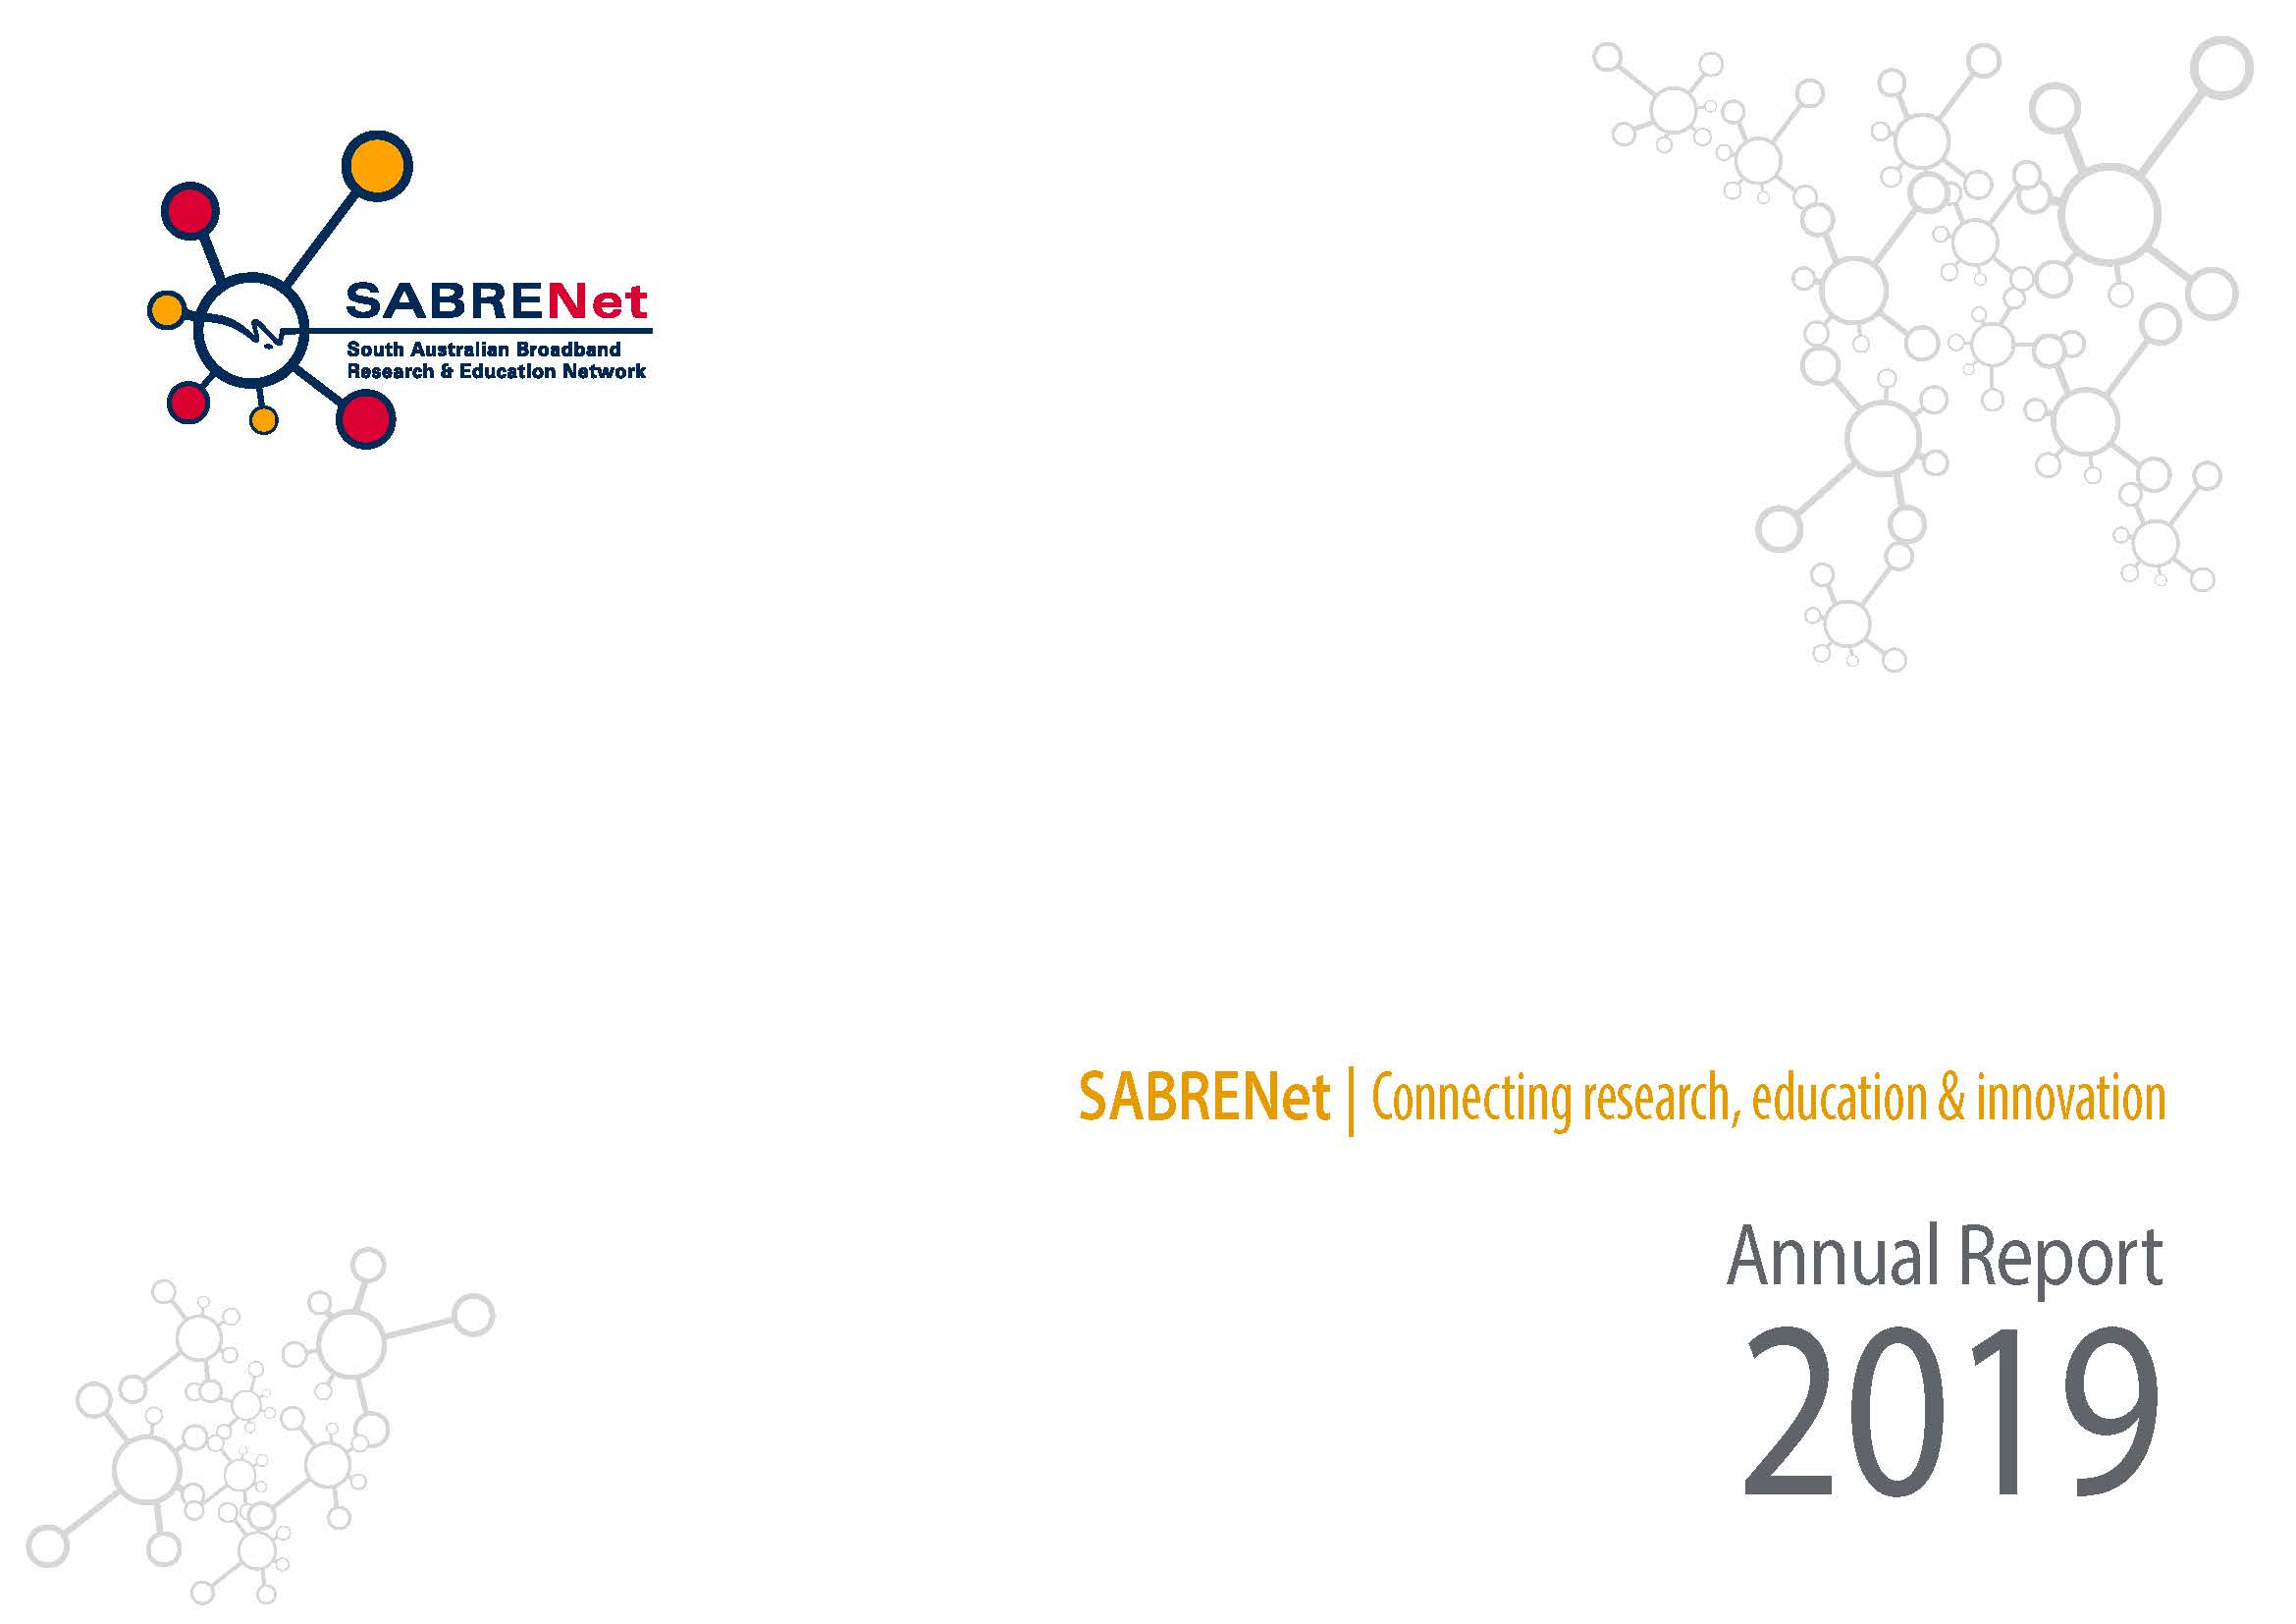 SABRENet 2019FY Annual Report now available!